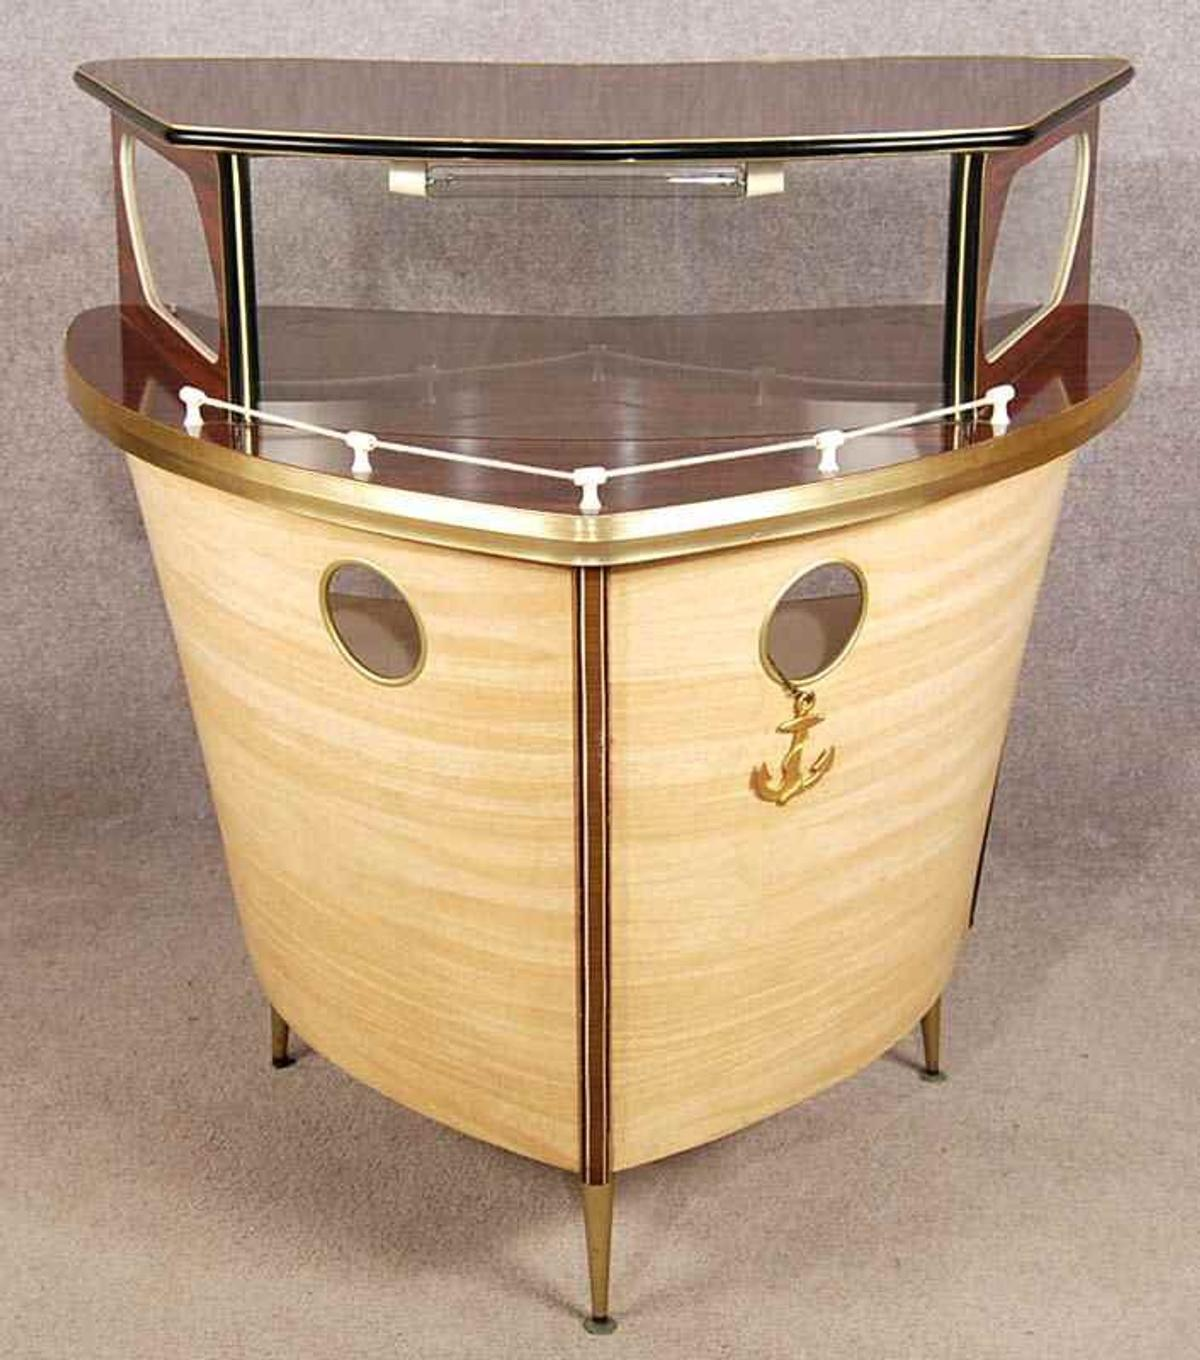 Vintage Retro Kitsch Home Bar Boat In Sa16 Port For 385 00 For Sale